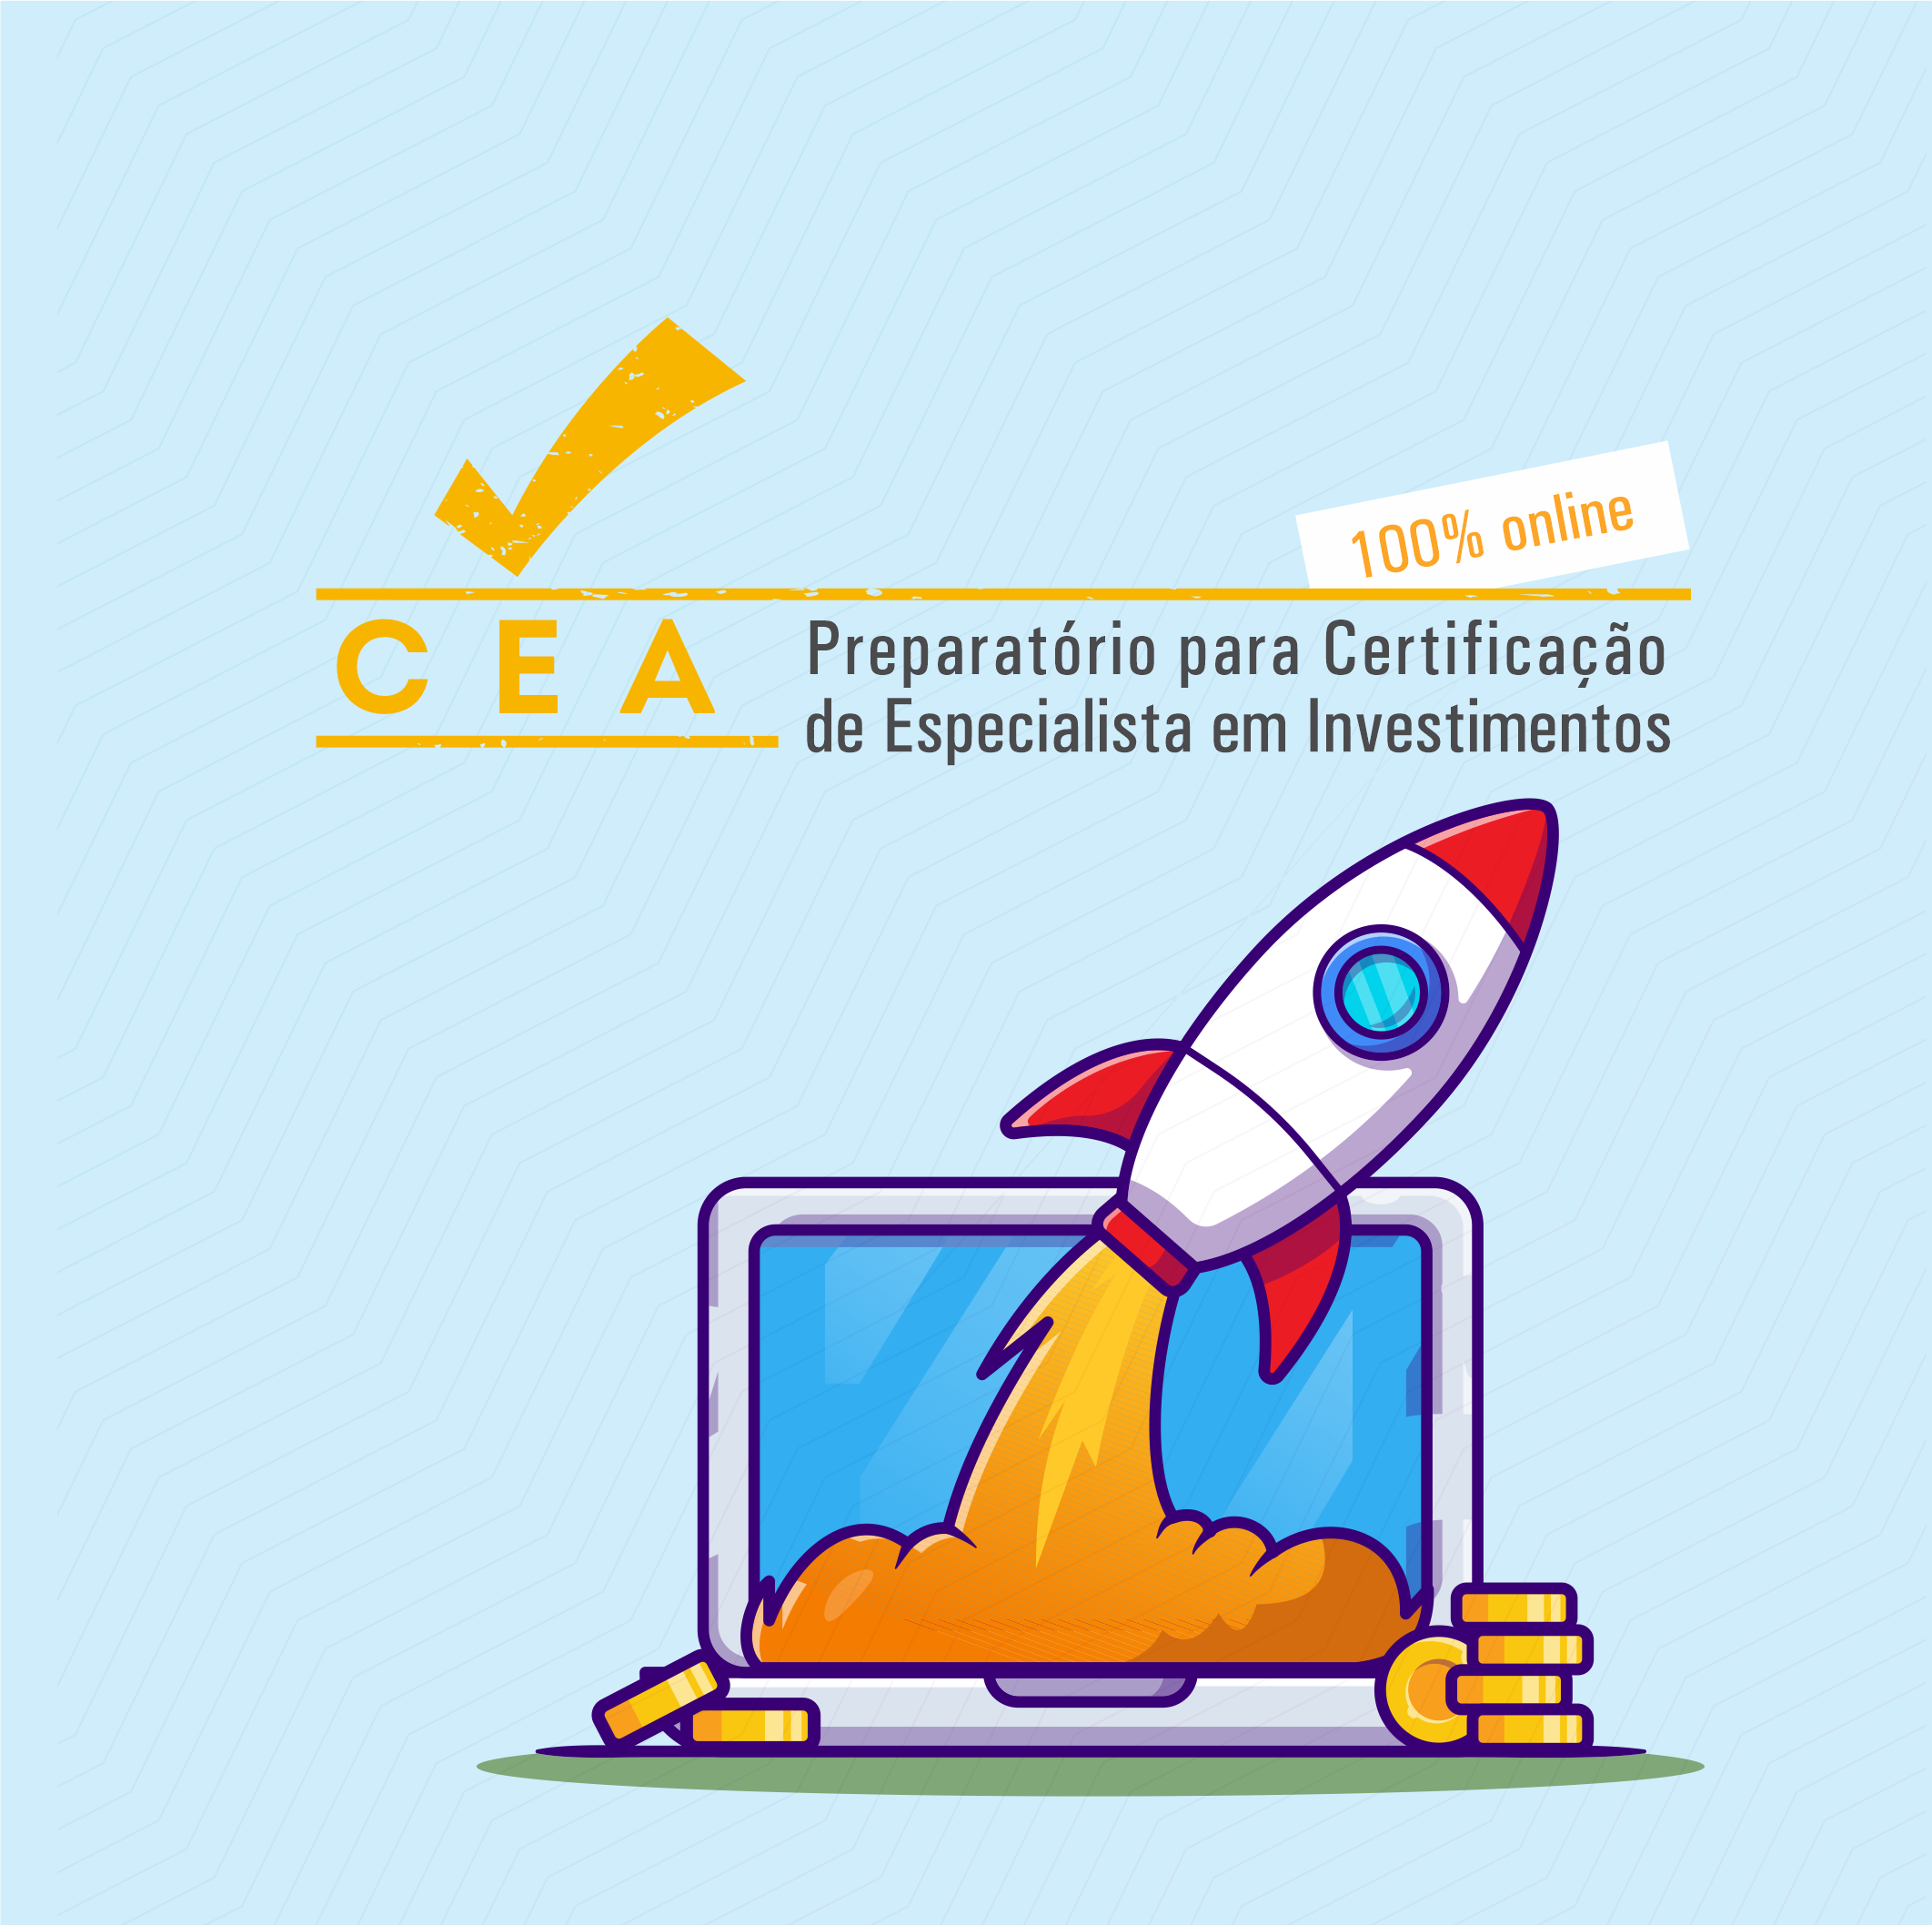 cea-selo-8151196.png